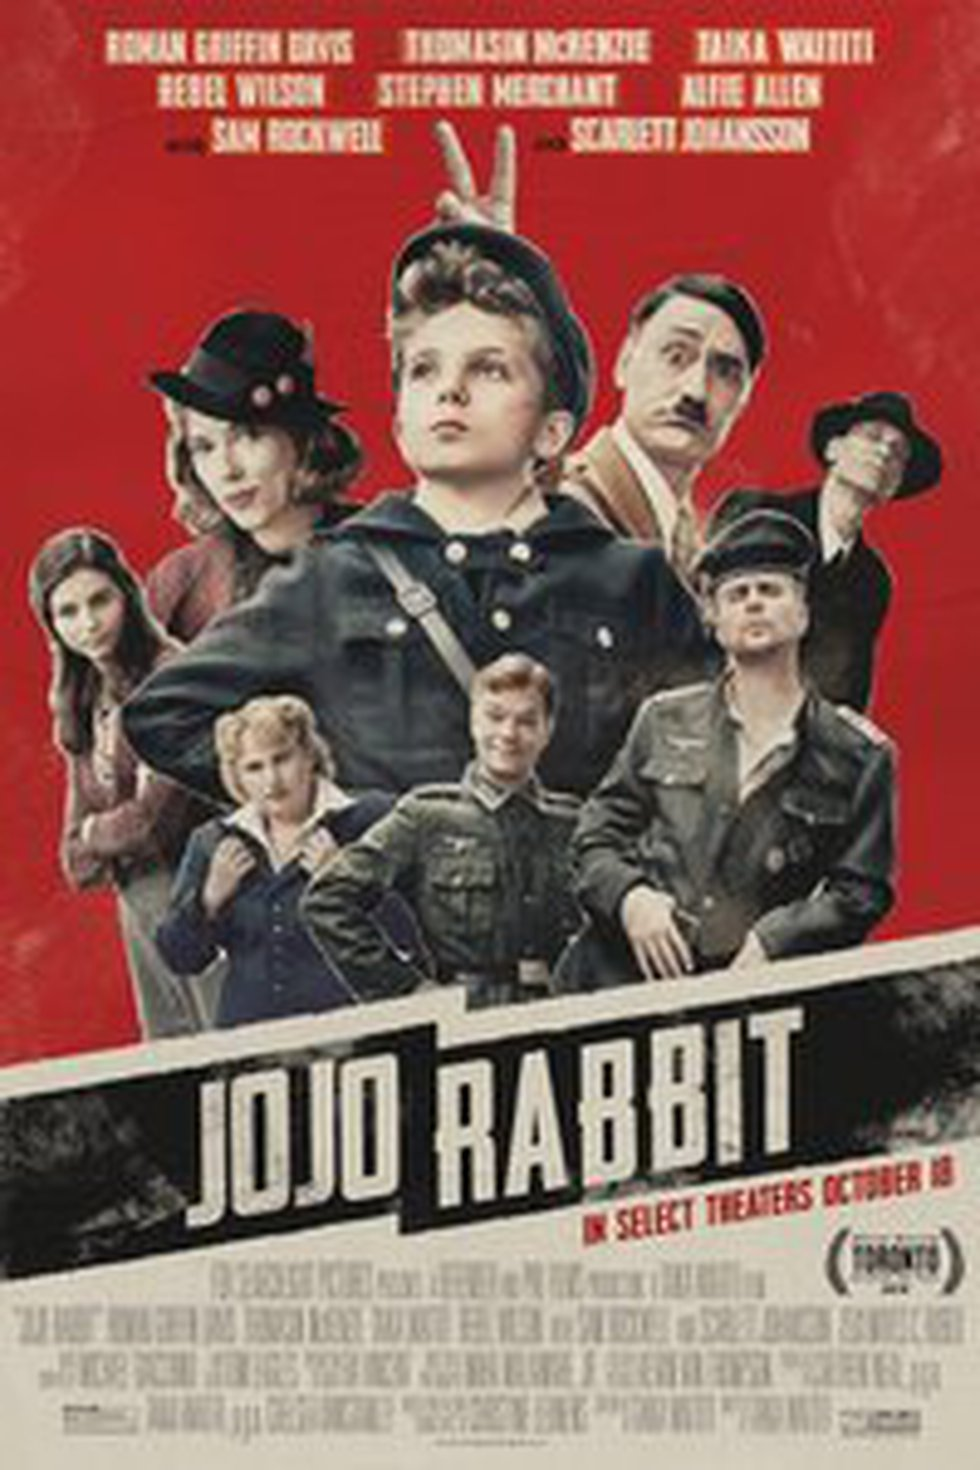 JoJo Rabbit nominated for best picture at the 92nd Annual Academy Awards